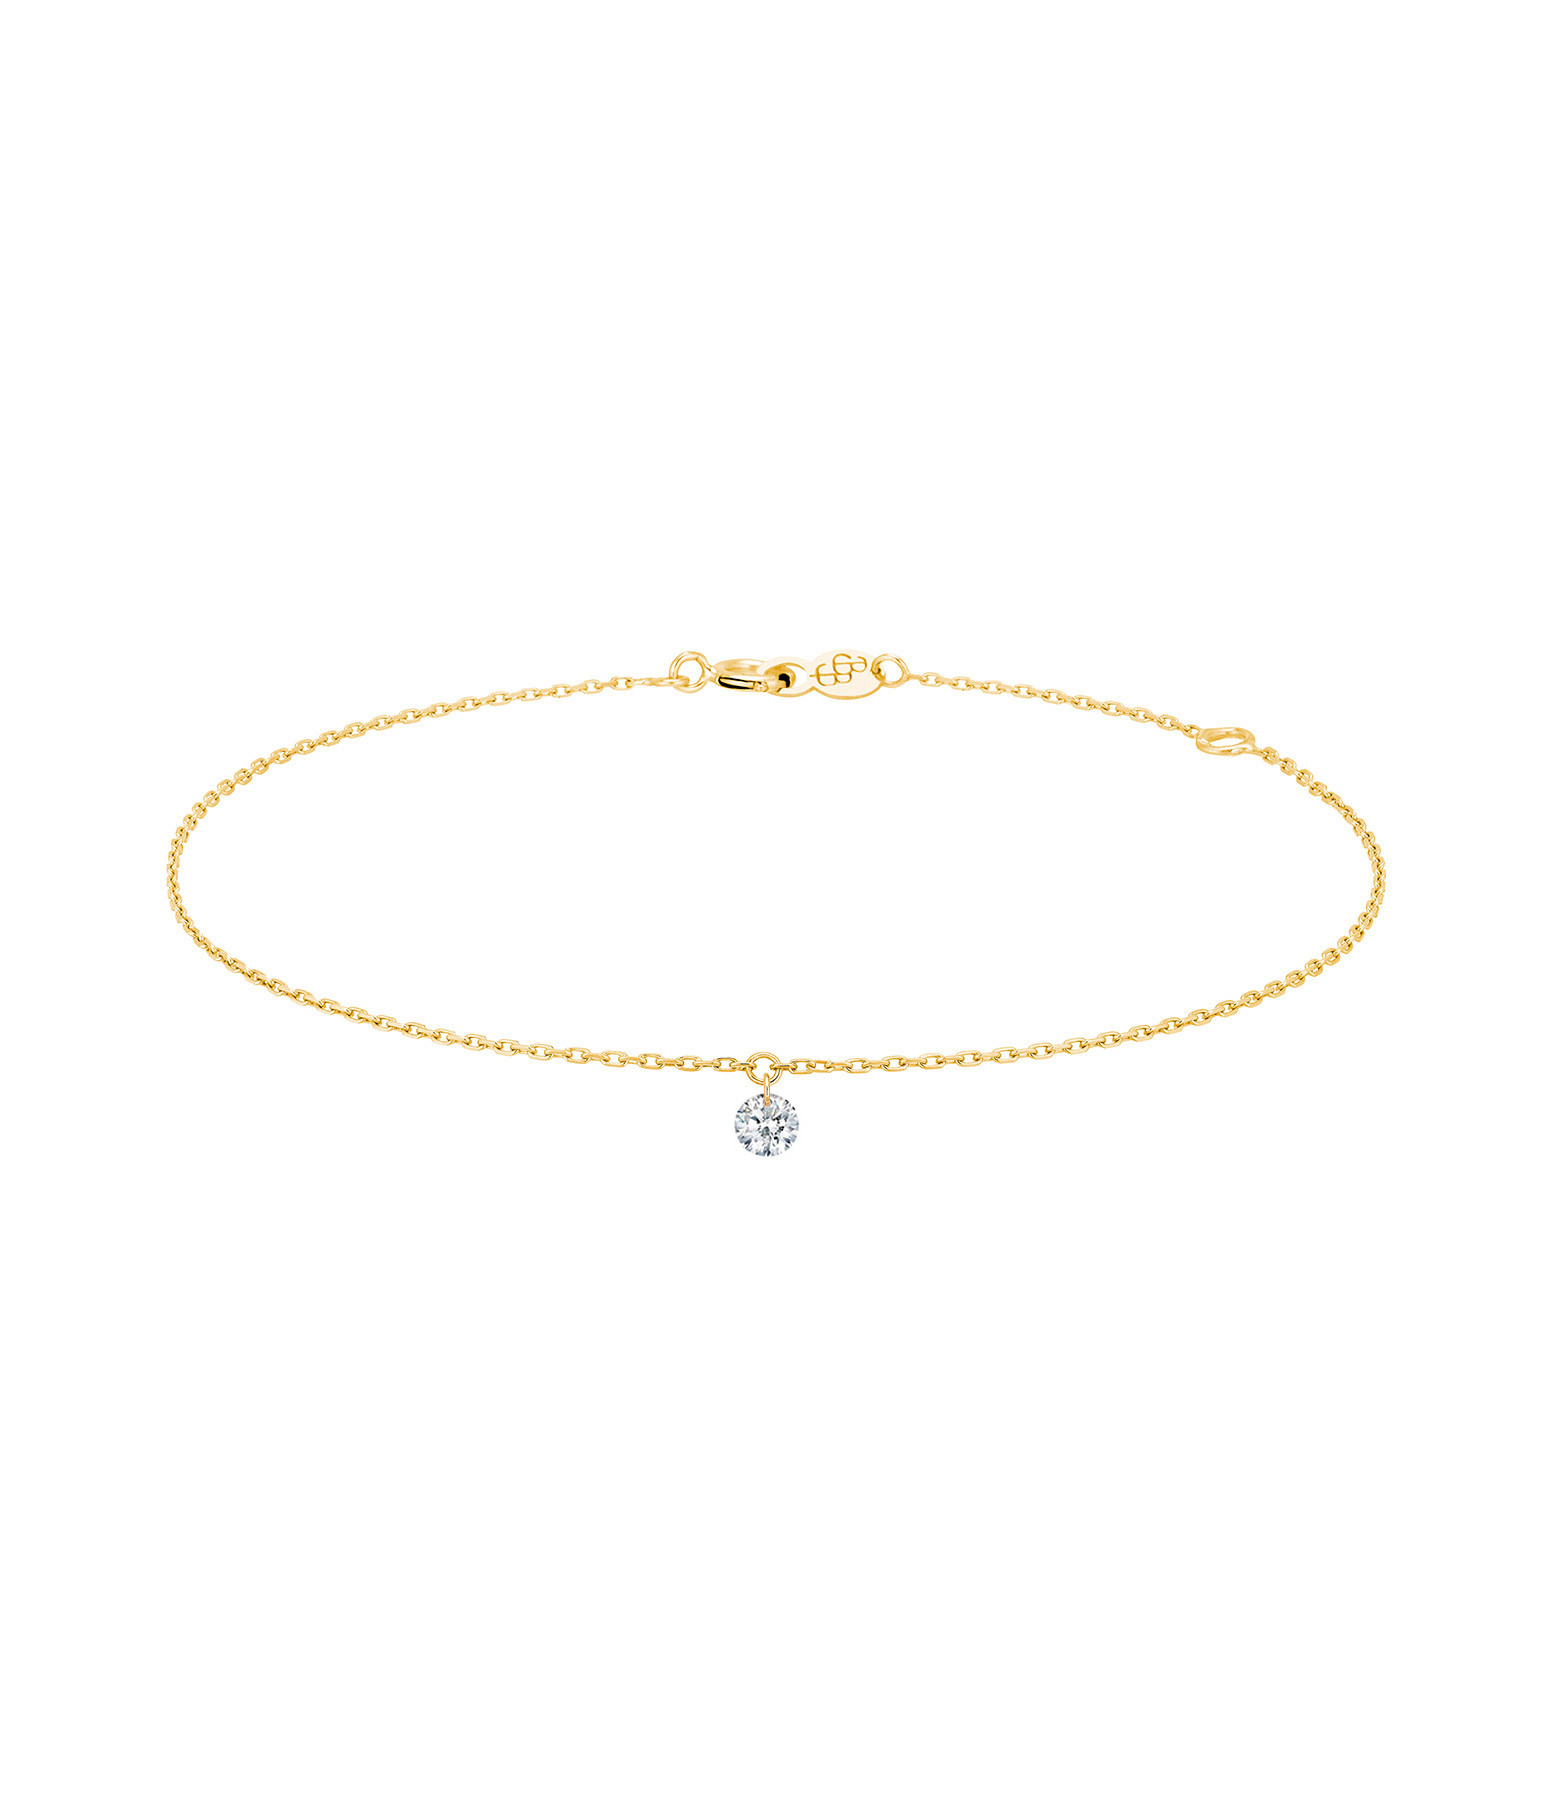 LA BRUNE & LA BLONDE - Bracelet 360° Diamant Brillant 0,10 Or Jaune